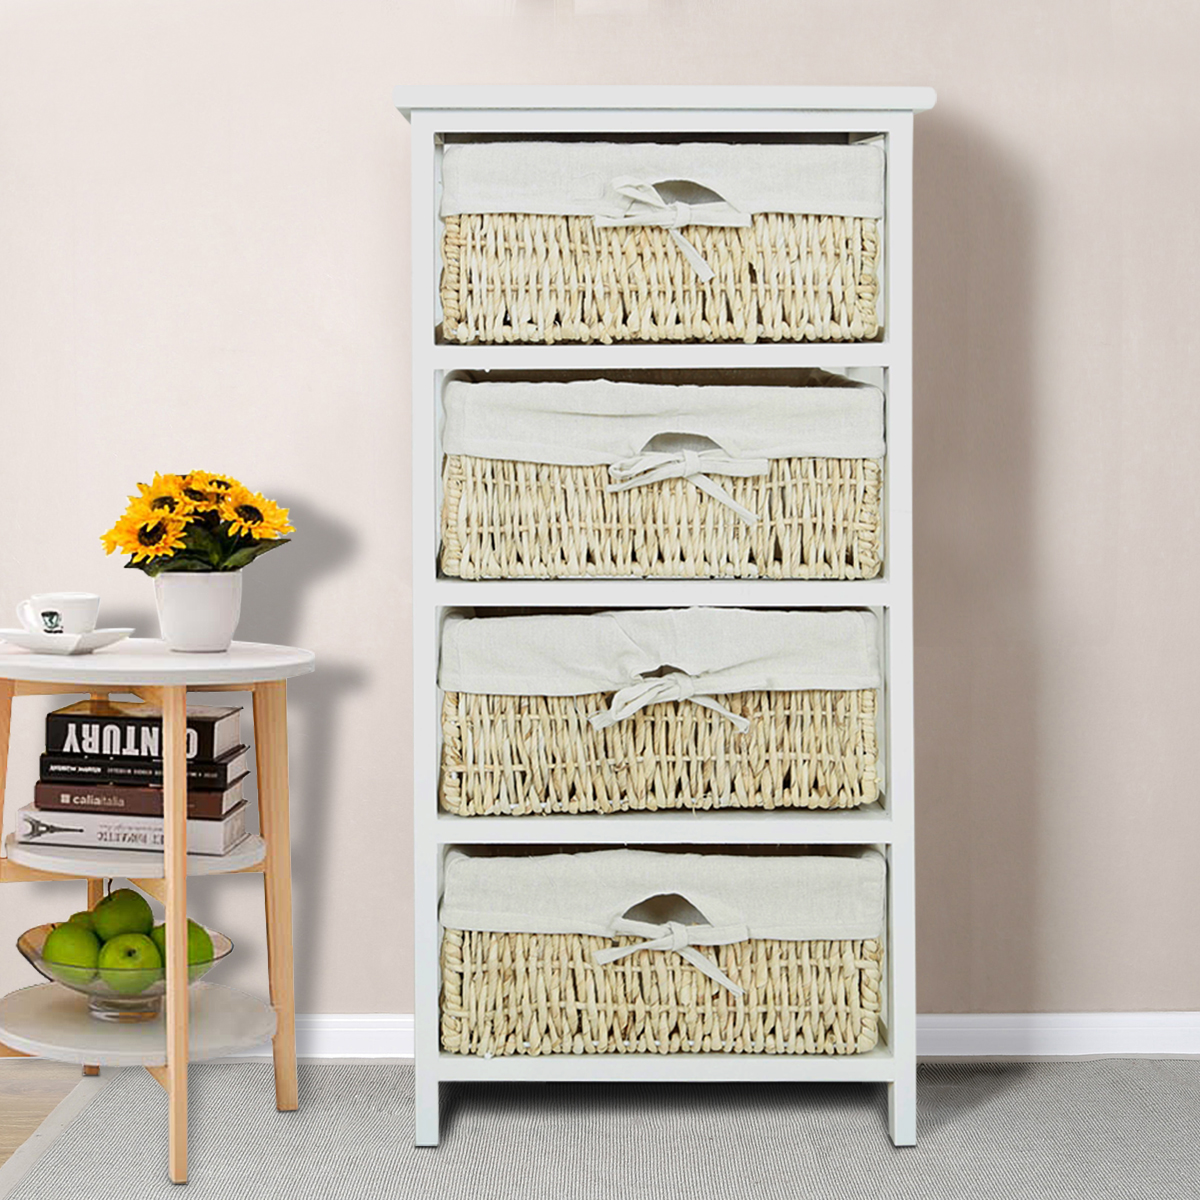 Panana Economic Storage Organizer Drawers with 4 Wicker Baskets Wooden Frame Entrance Changing Shoe Home Furniture|  - title=